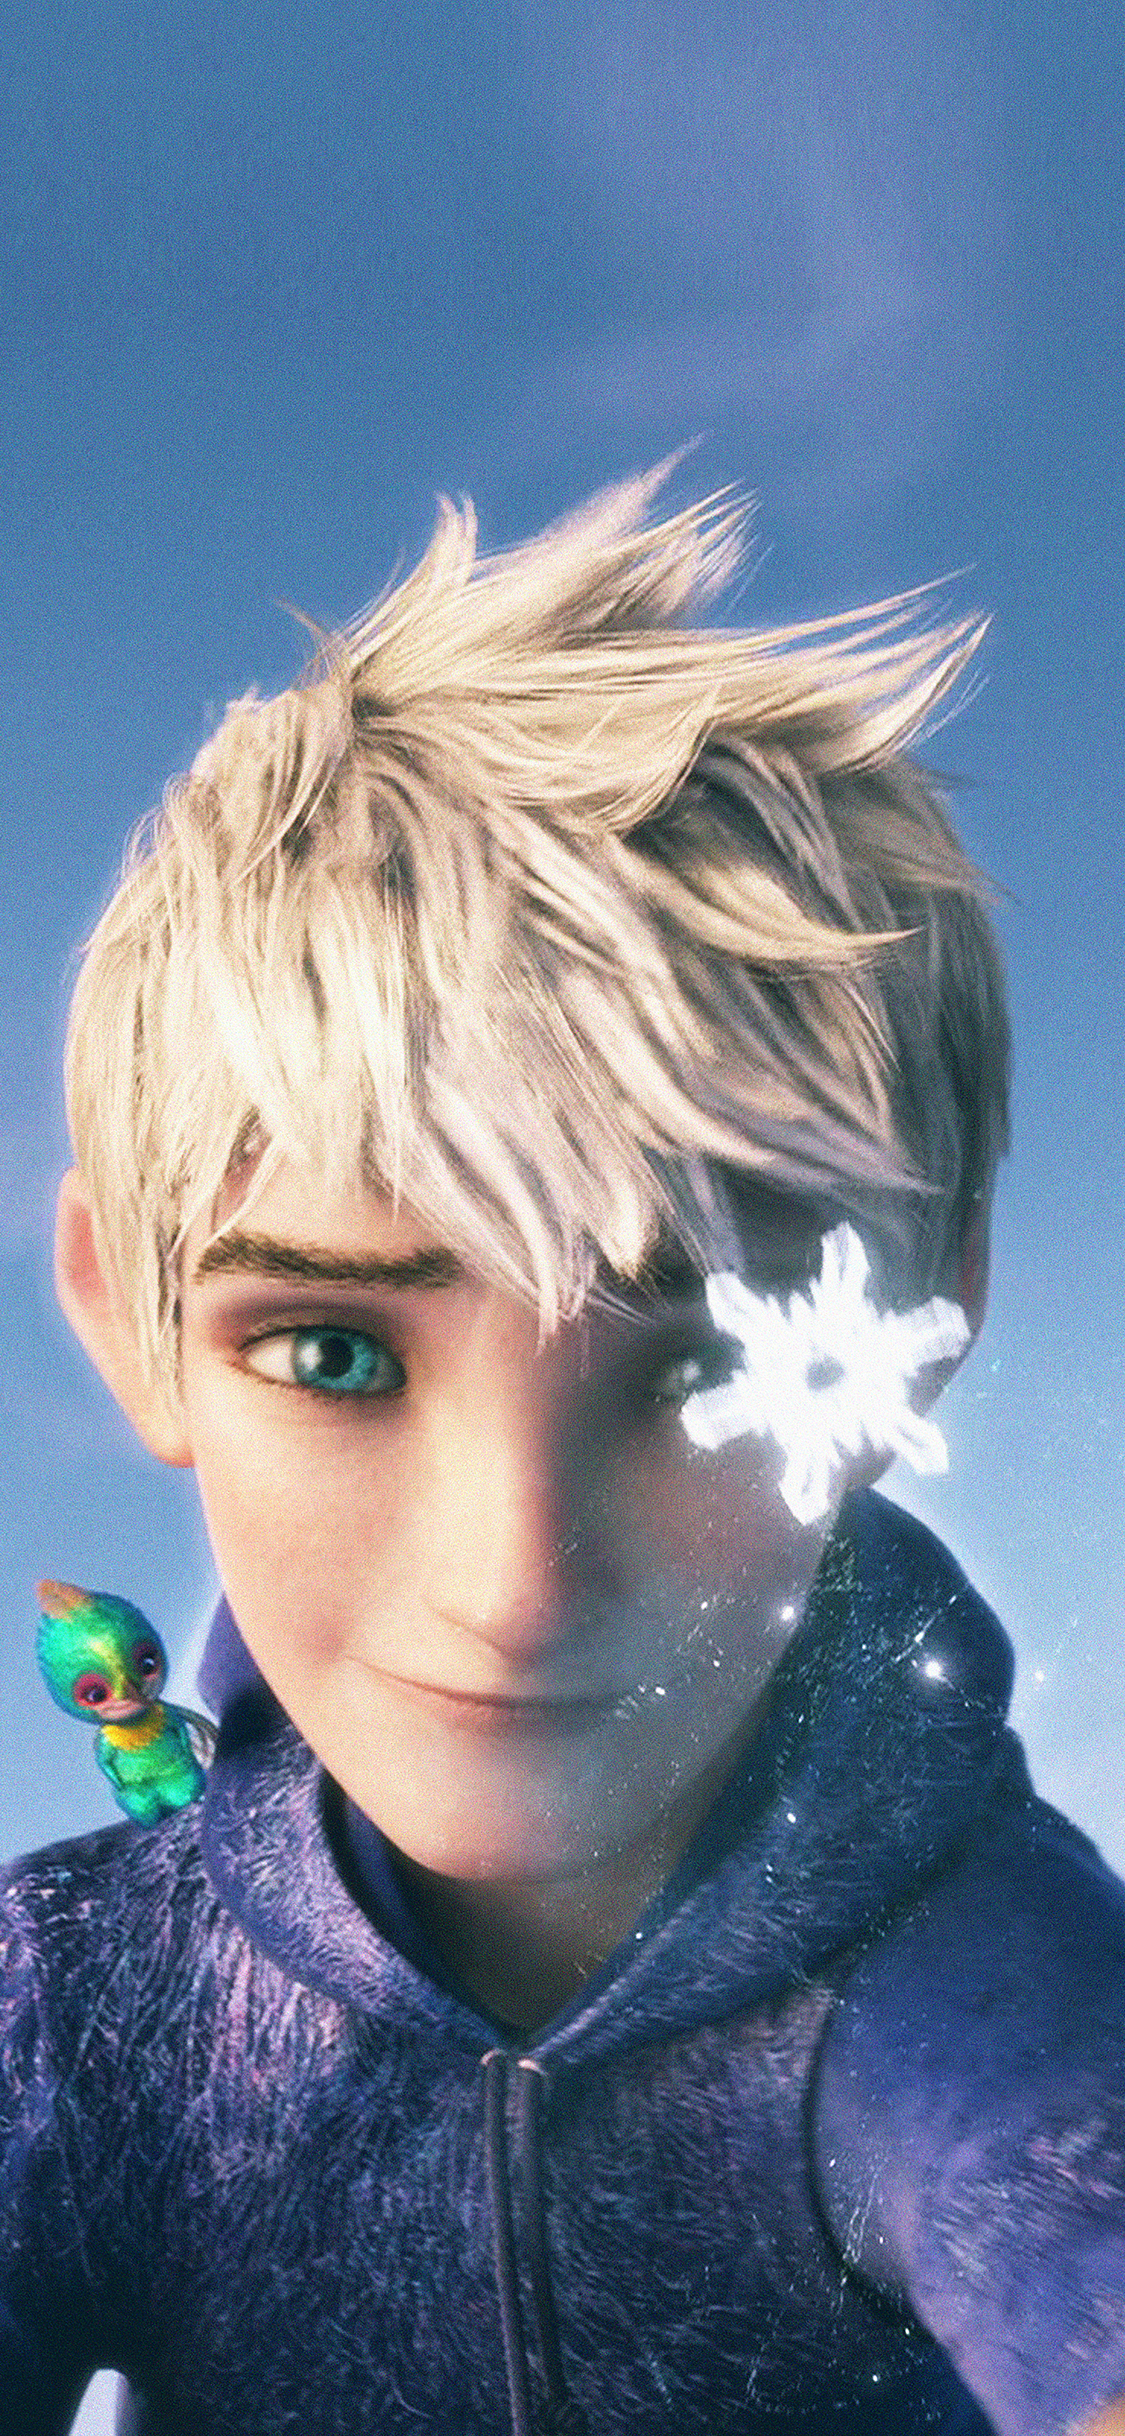 iPhoneXpapers.com-Apple-iPhone-wallpaper-ac71-wallpaper-jack-frost-rise-of-the-guardians-illust